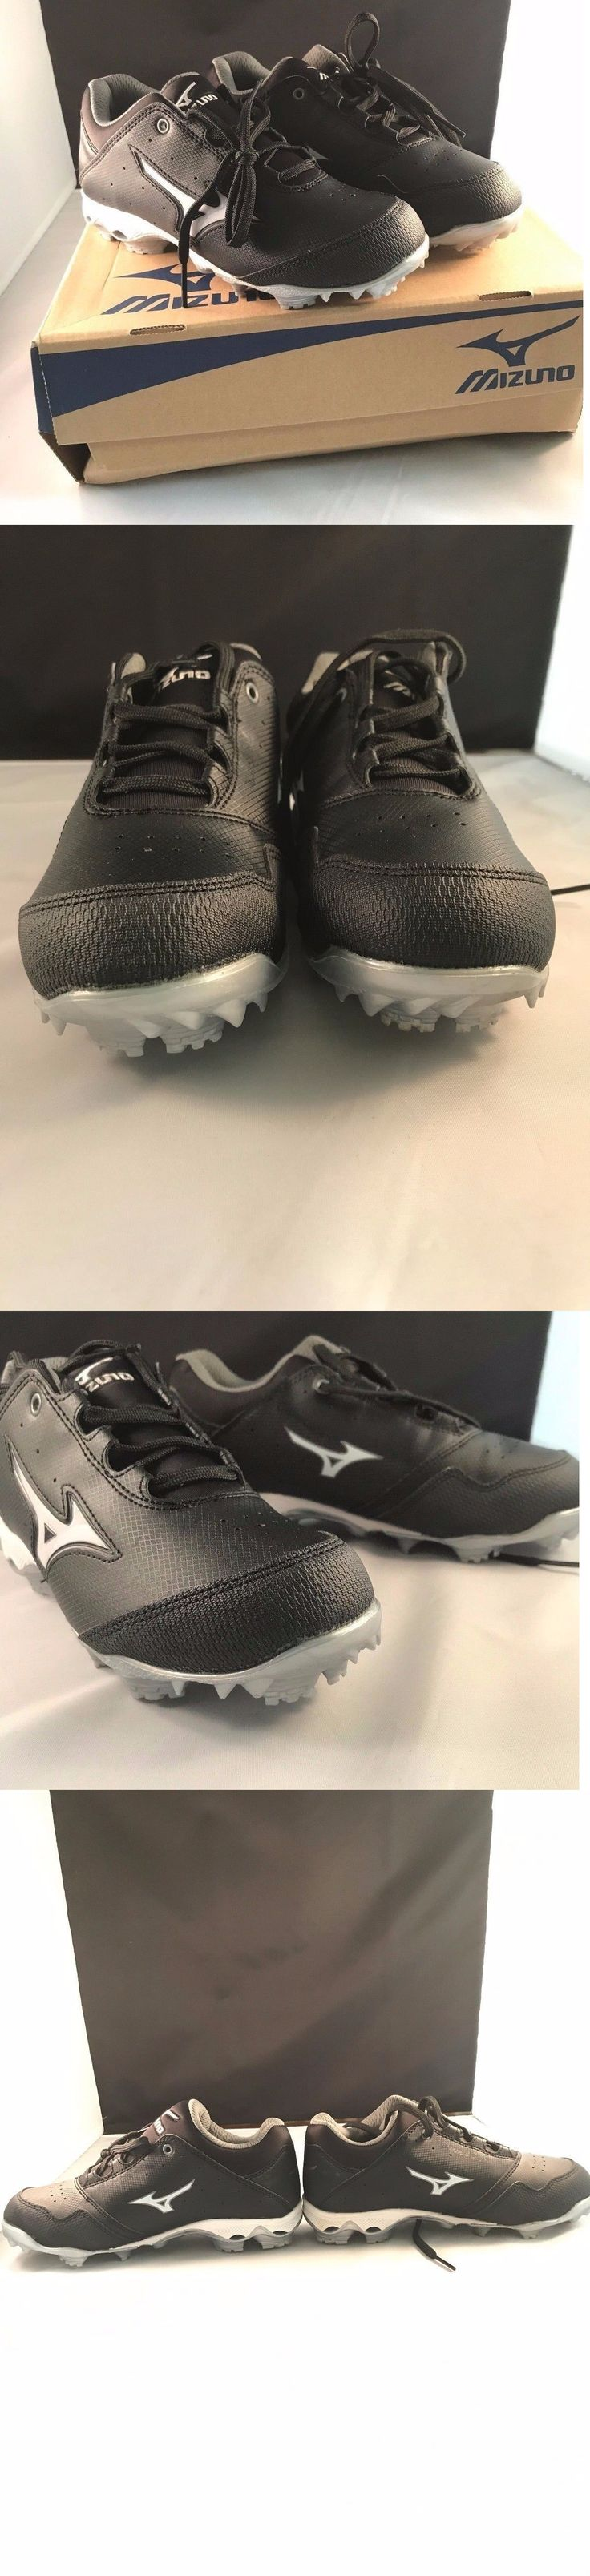 Womens 159060: Mizuno 9 Spike Finch Elite Switch Black White Size 7.0 Women S Softball Cleat -> BUY IT NOW ONLY: $49.99 on eBay!